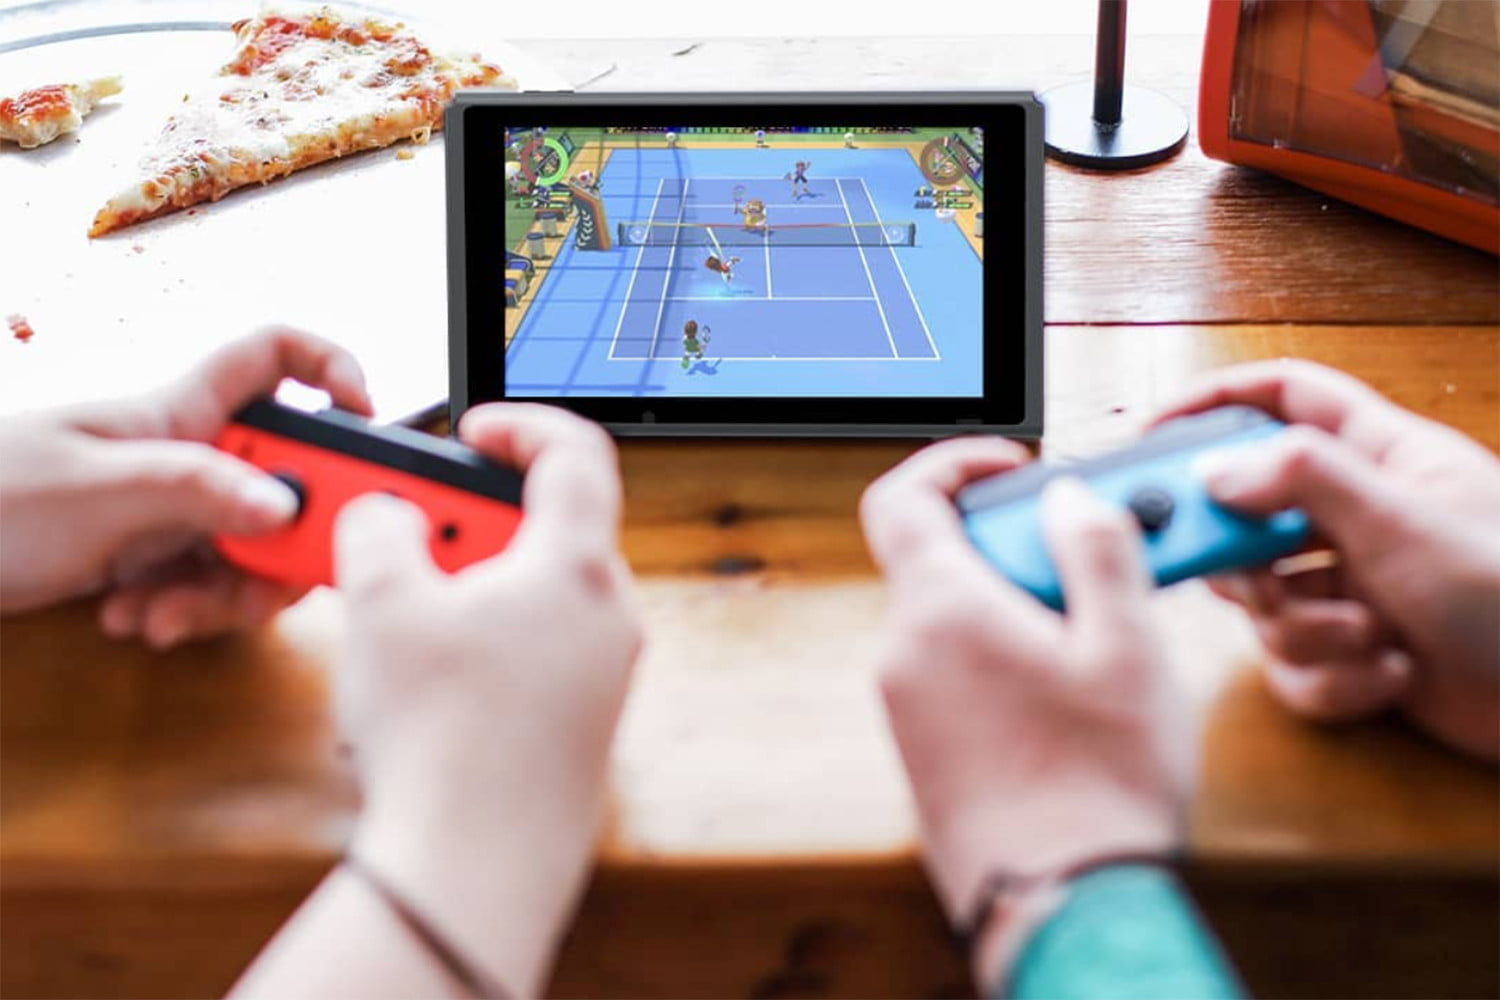 Nintendo hardly ever discounts its games, but you can get them on sale now